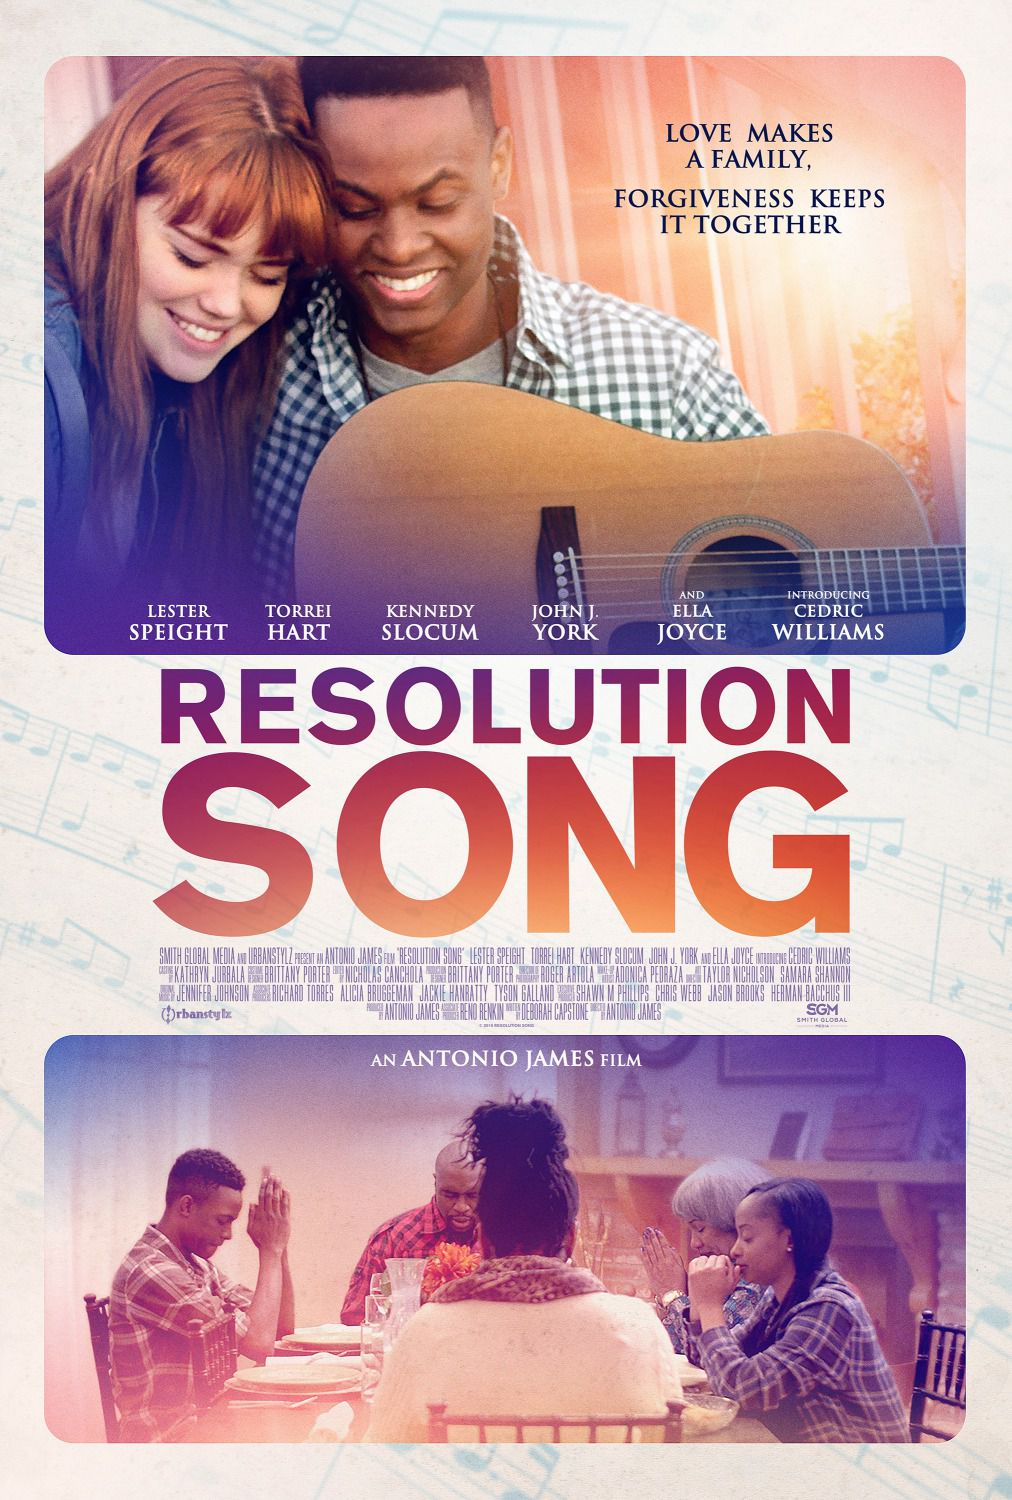 Resolution song - film poster